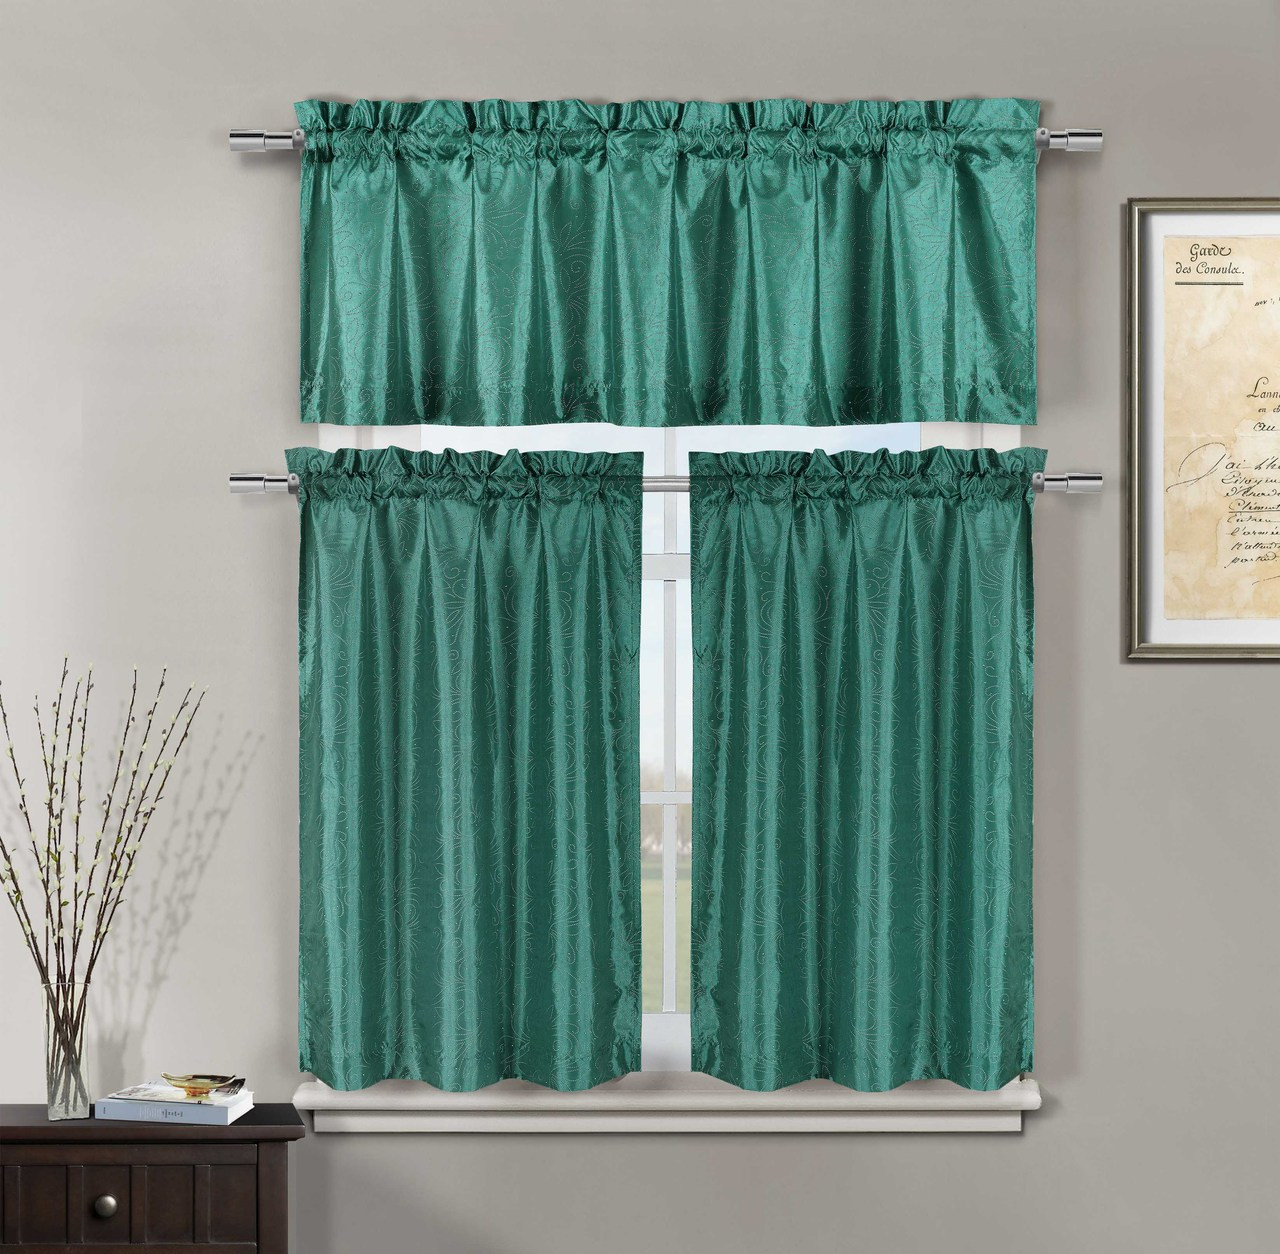 3 piece teal kitchen window curtain set faux silk pin for 3 window curtain design